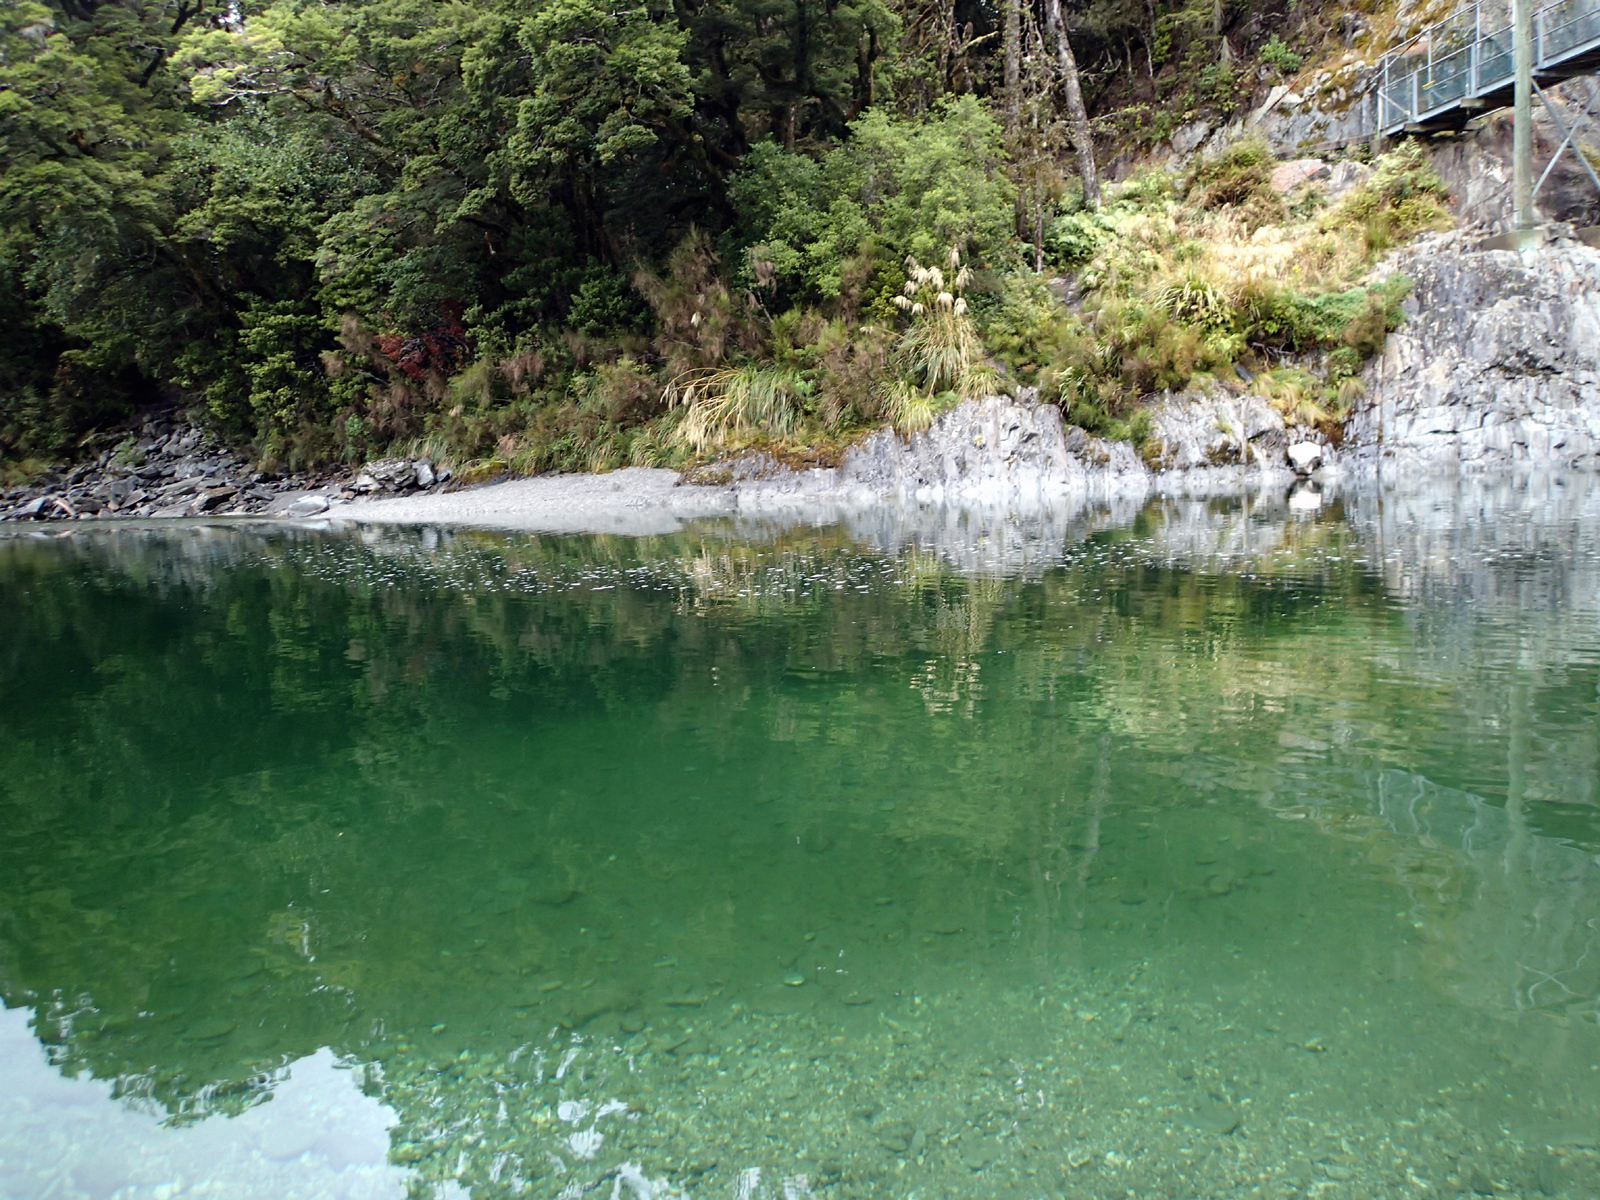 blue-green water with foliage behind and part of a suspension bridge